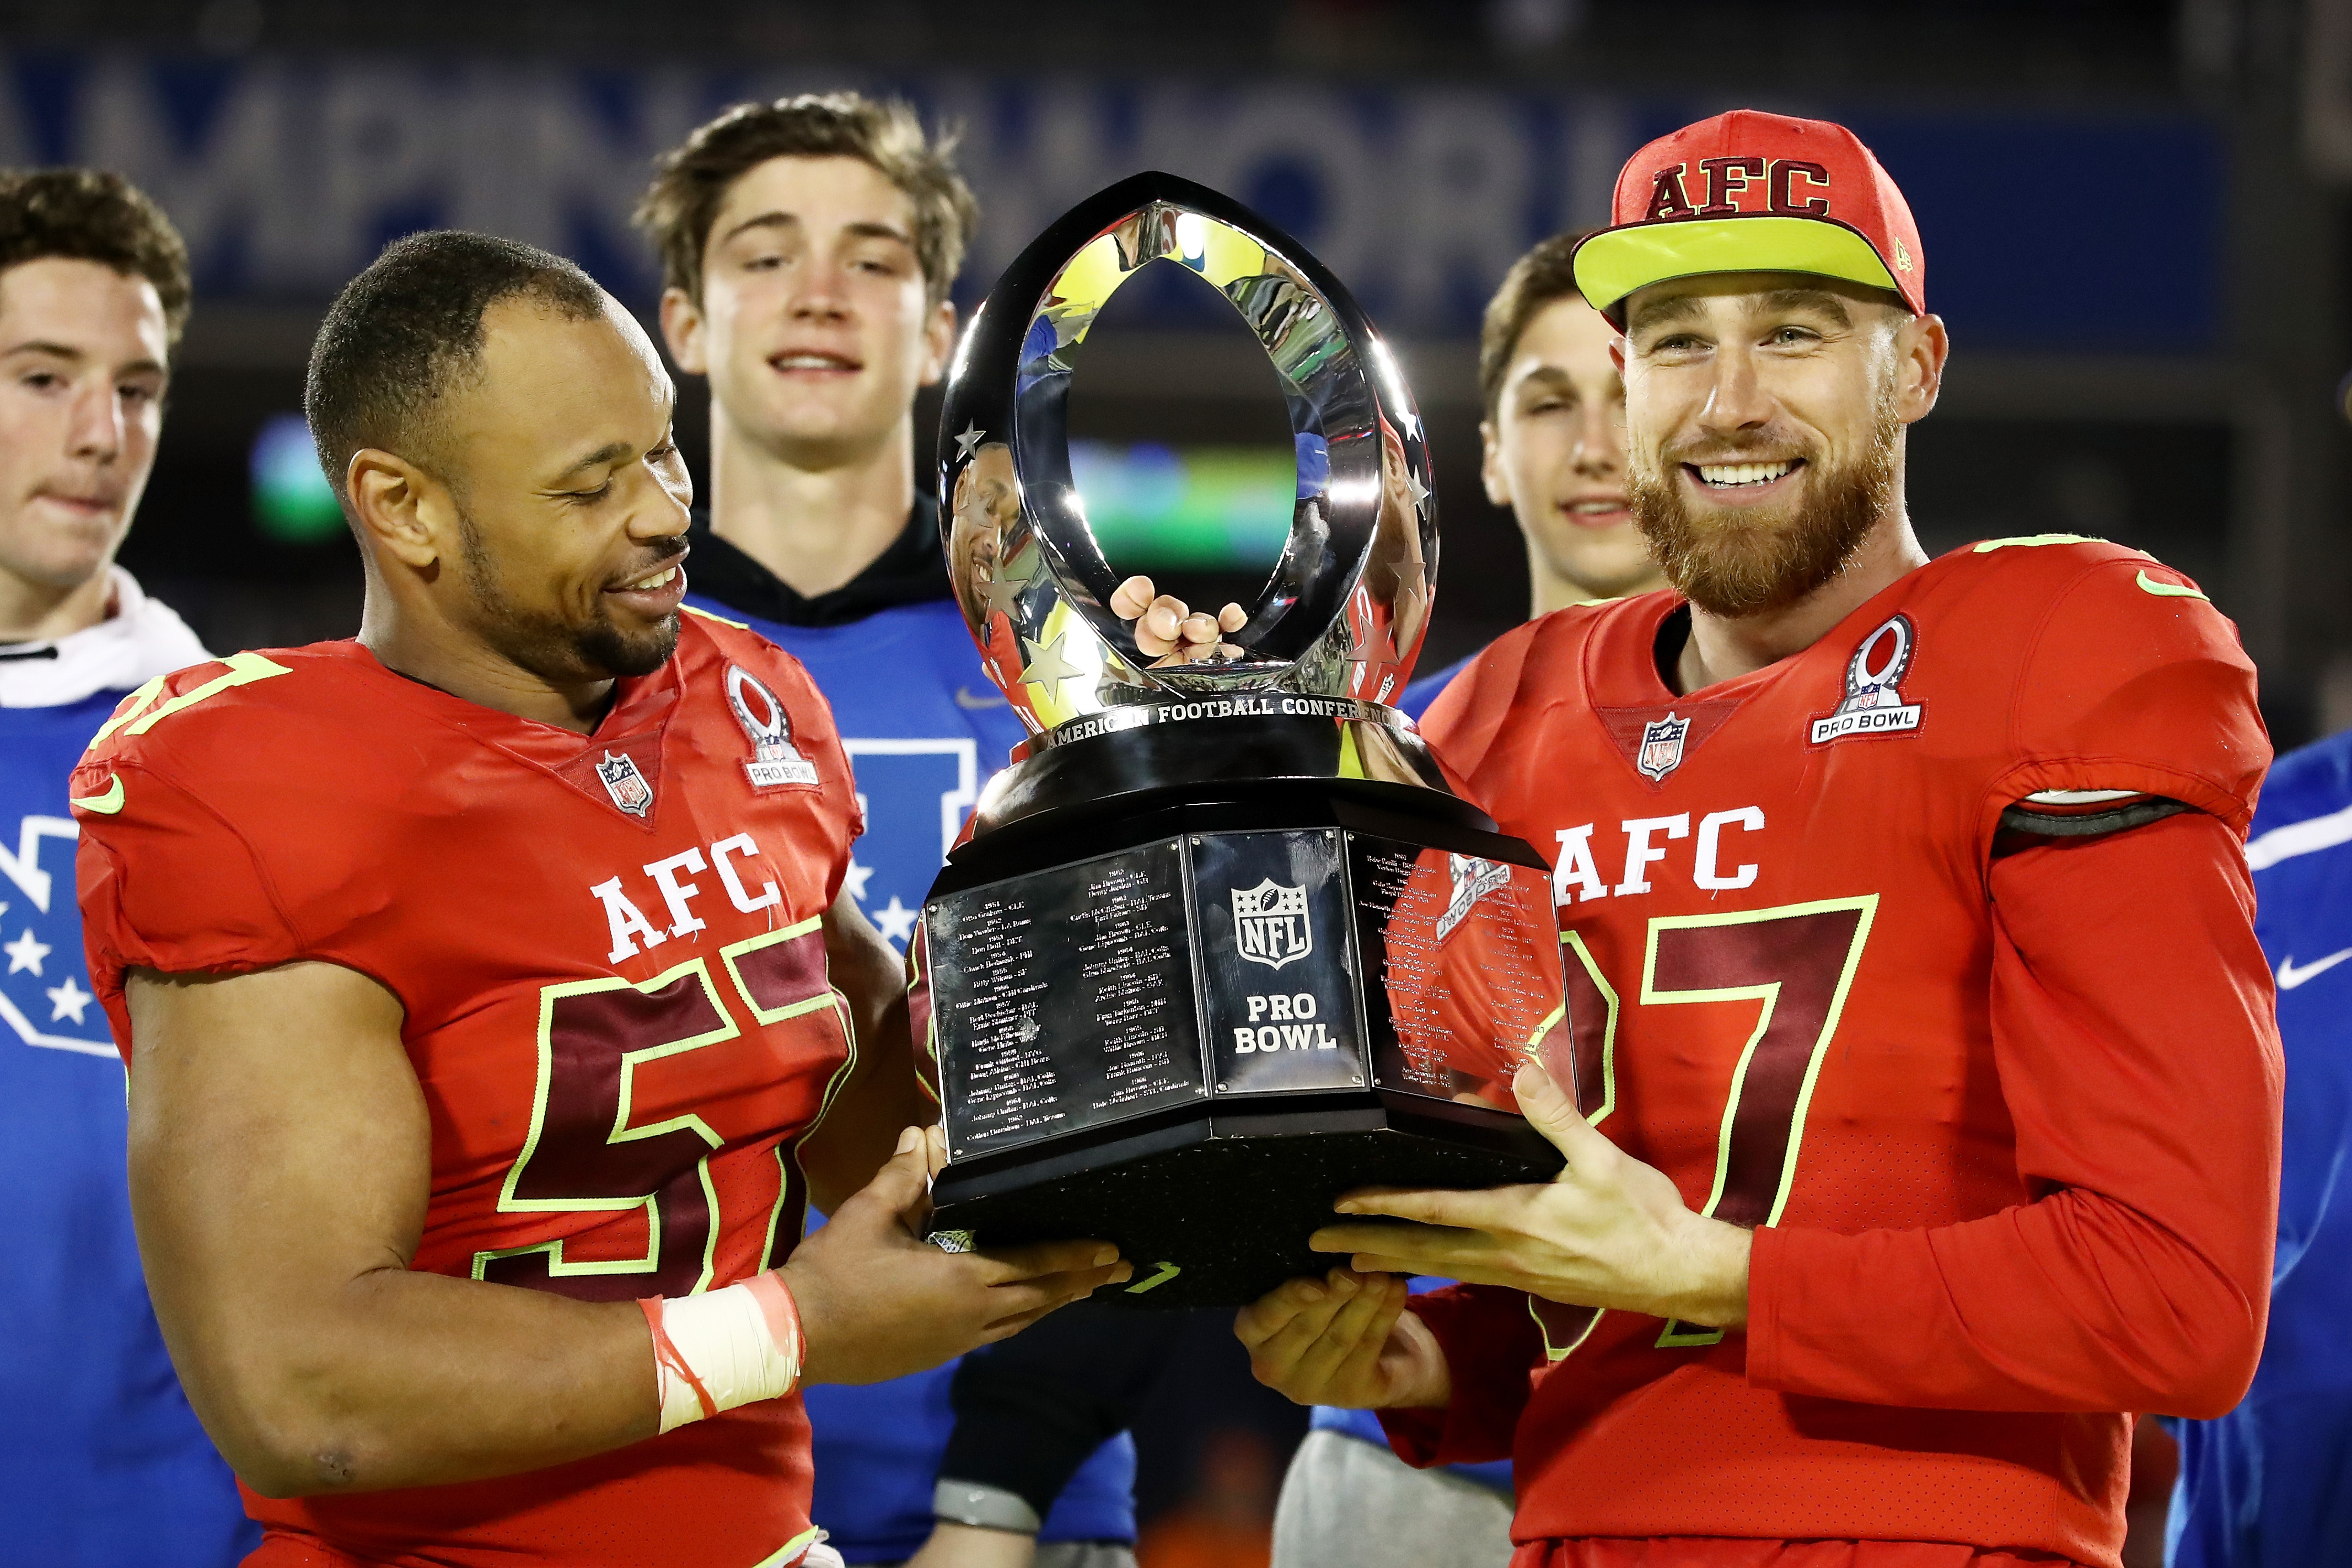 Lorenzo Alexander of the Bills, left, and Travis Kelce of the Kansas City Chiefs pose after the AFC's win in the NFL Pro Bowl. Alexander was named defensive MVP and Kelce was the offensive MVP. (Getty Images)